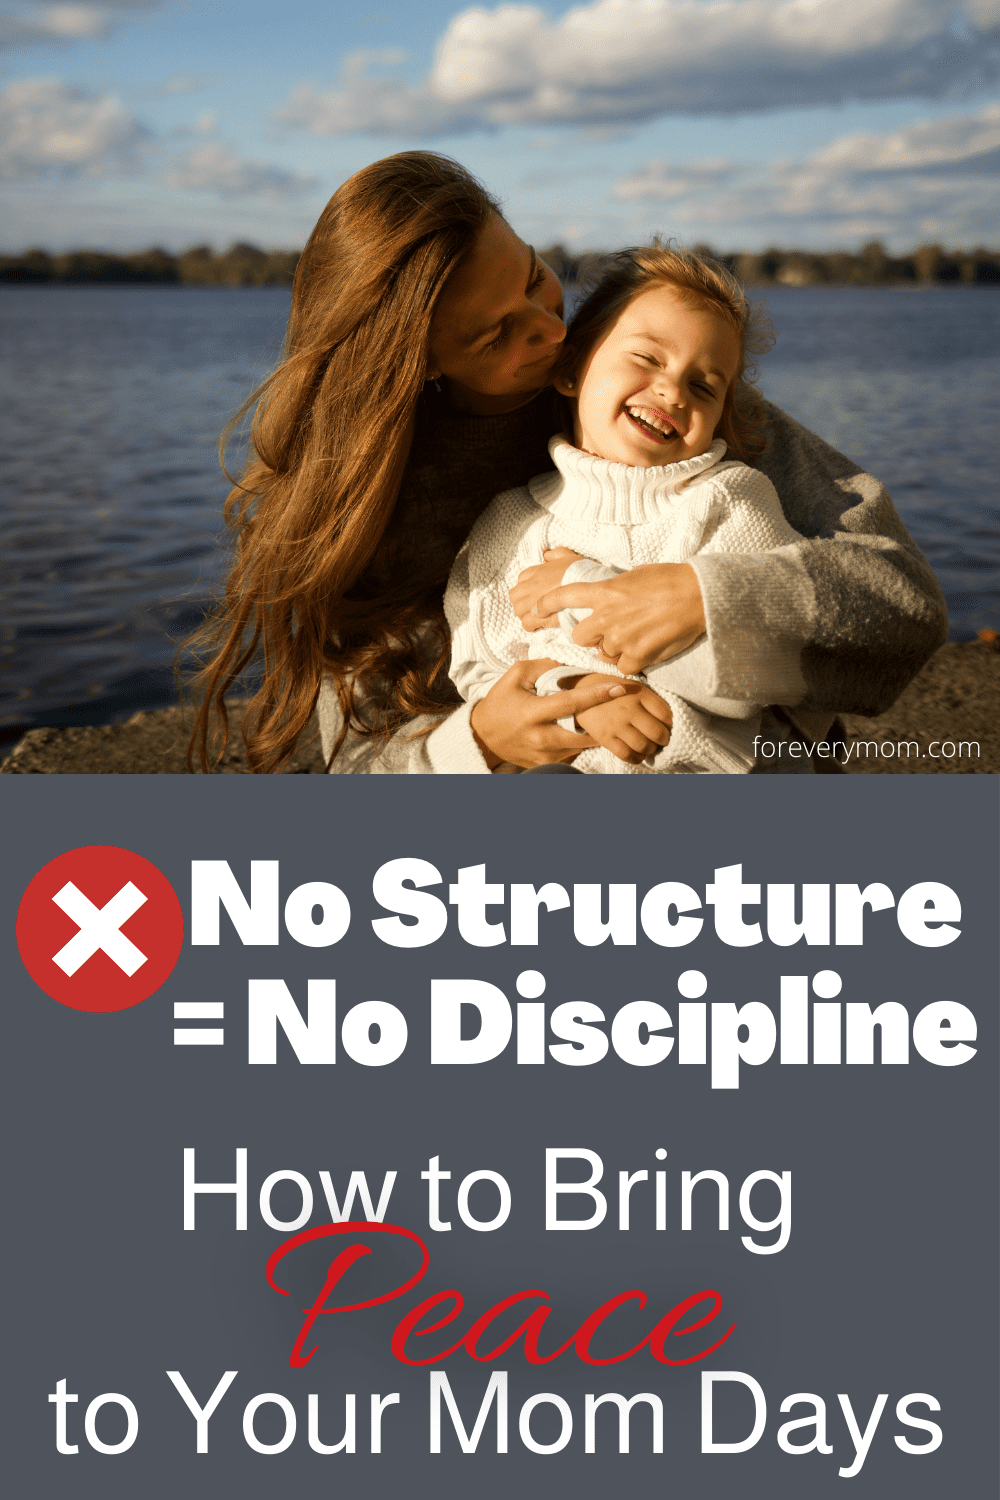 Discipline and structure